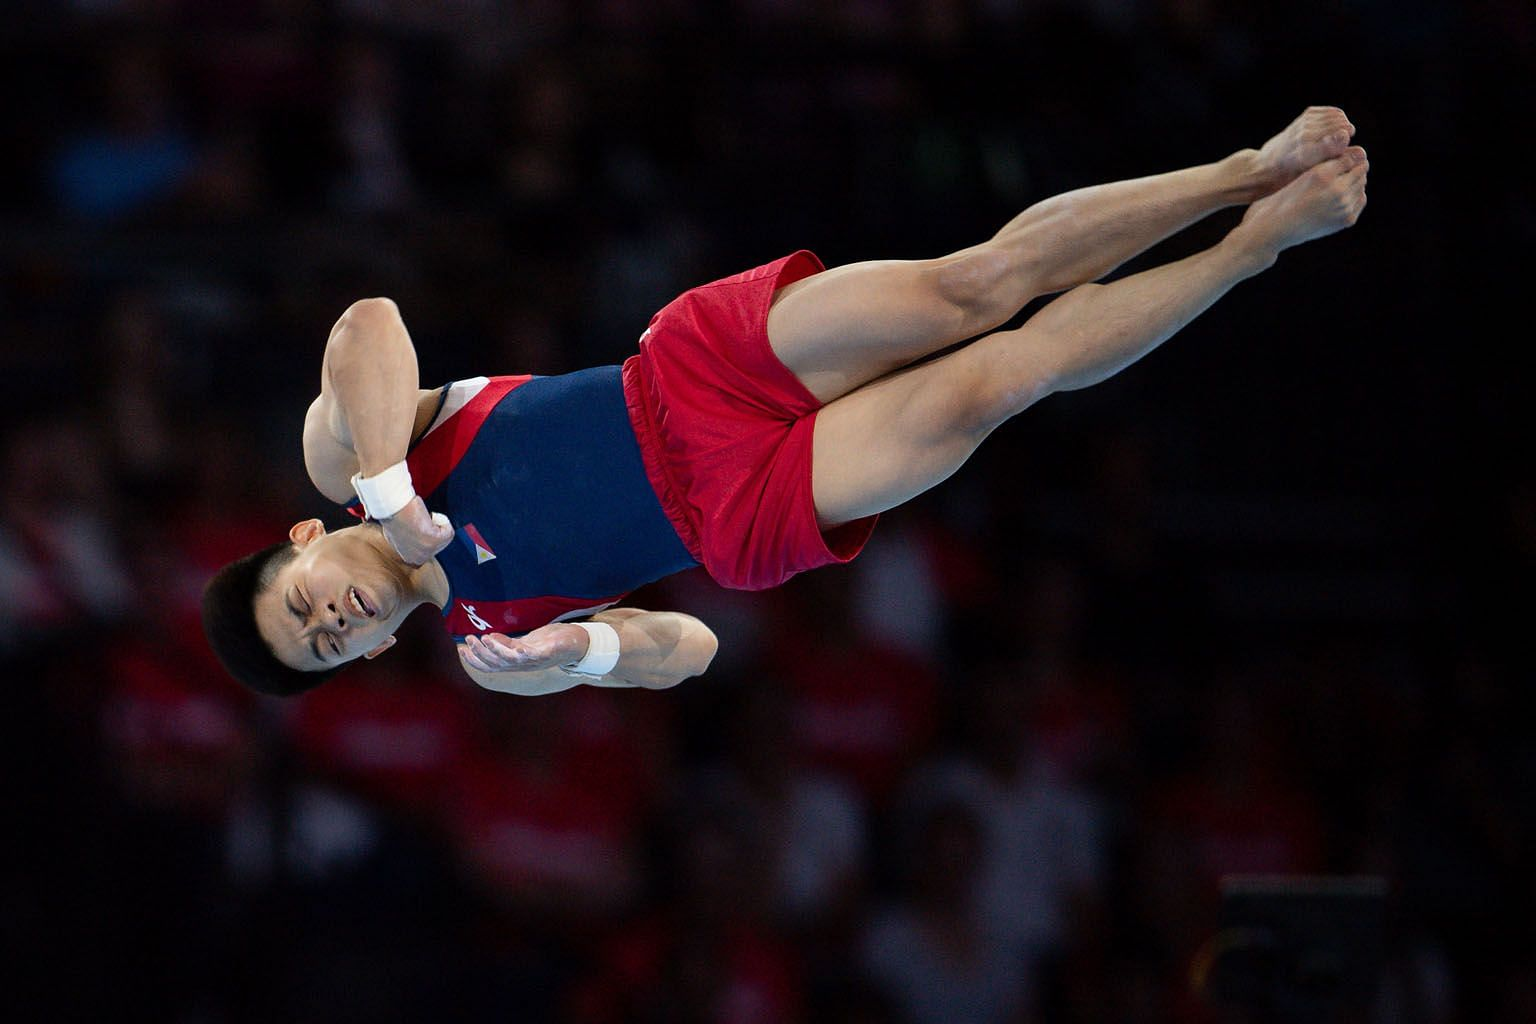 Carlos Yulo of the Philippines twisting to the floor exercise title at the Gymnastics World Championships in Stuttgart last Saturday. PHOTO: EPA-EFE